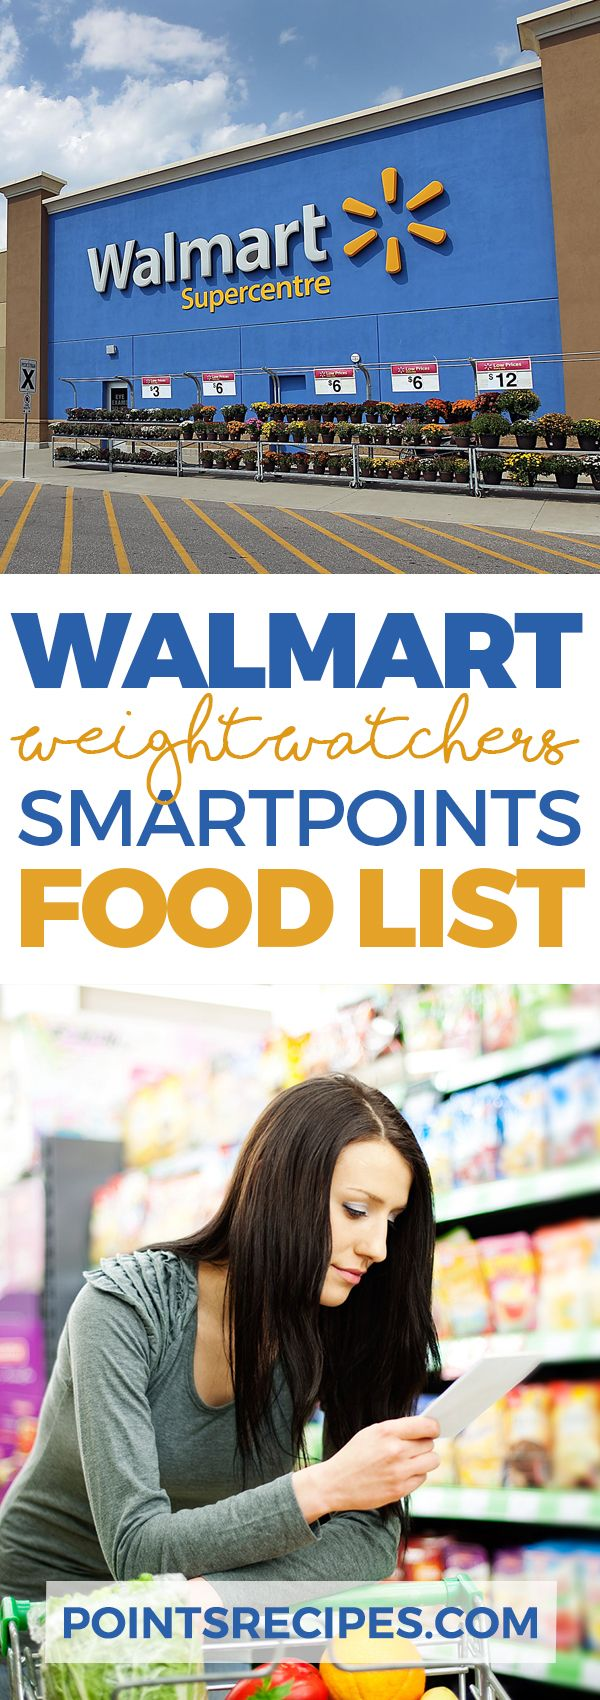 Weight Watchers SmartPoints Food List For Walmart Groceries